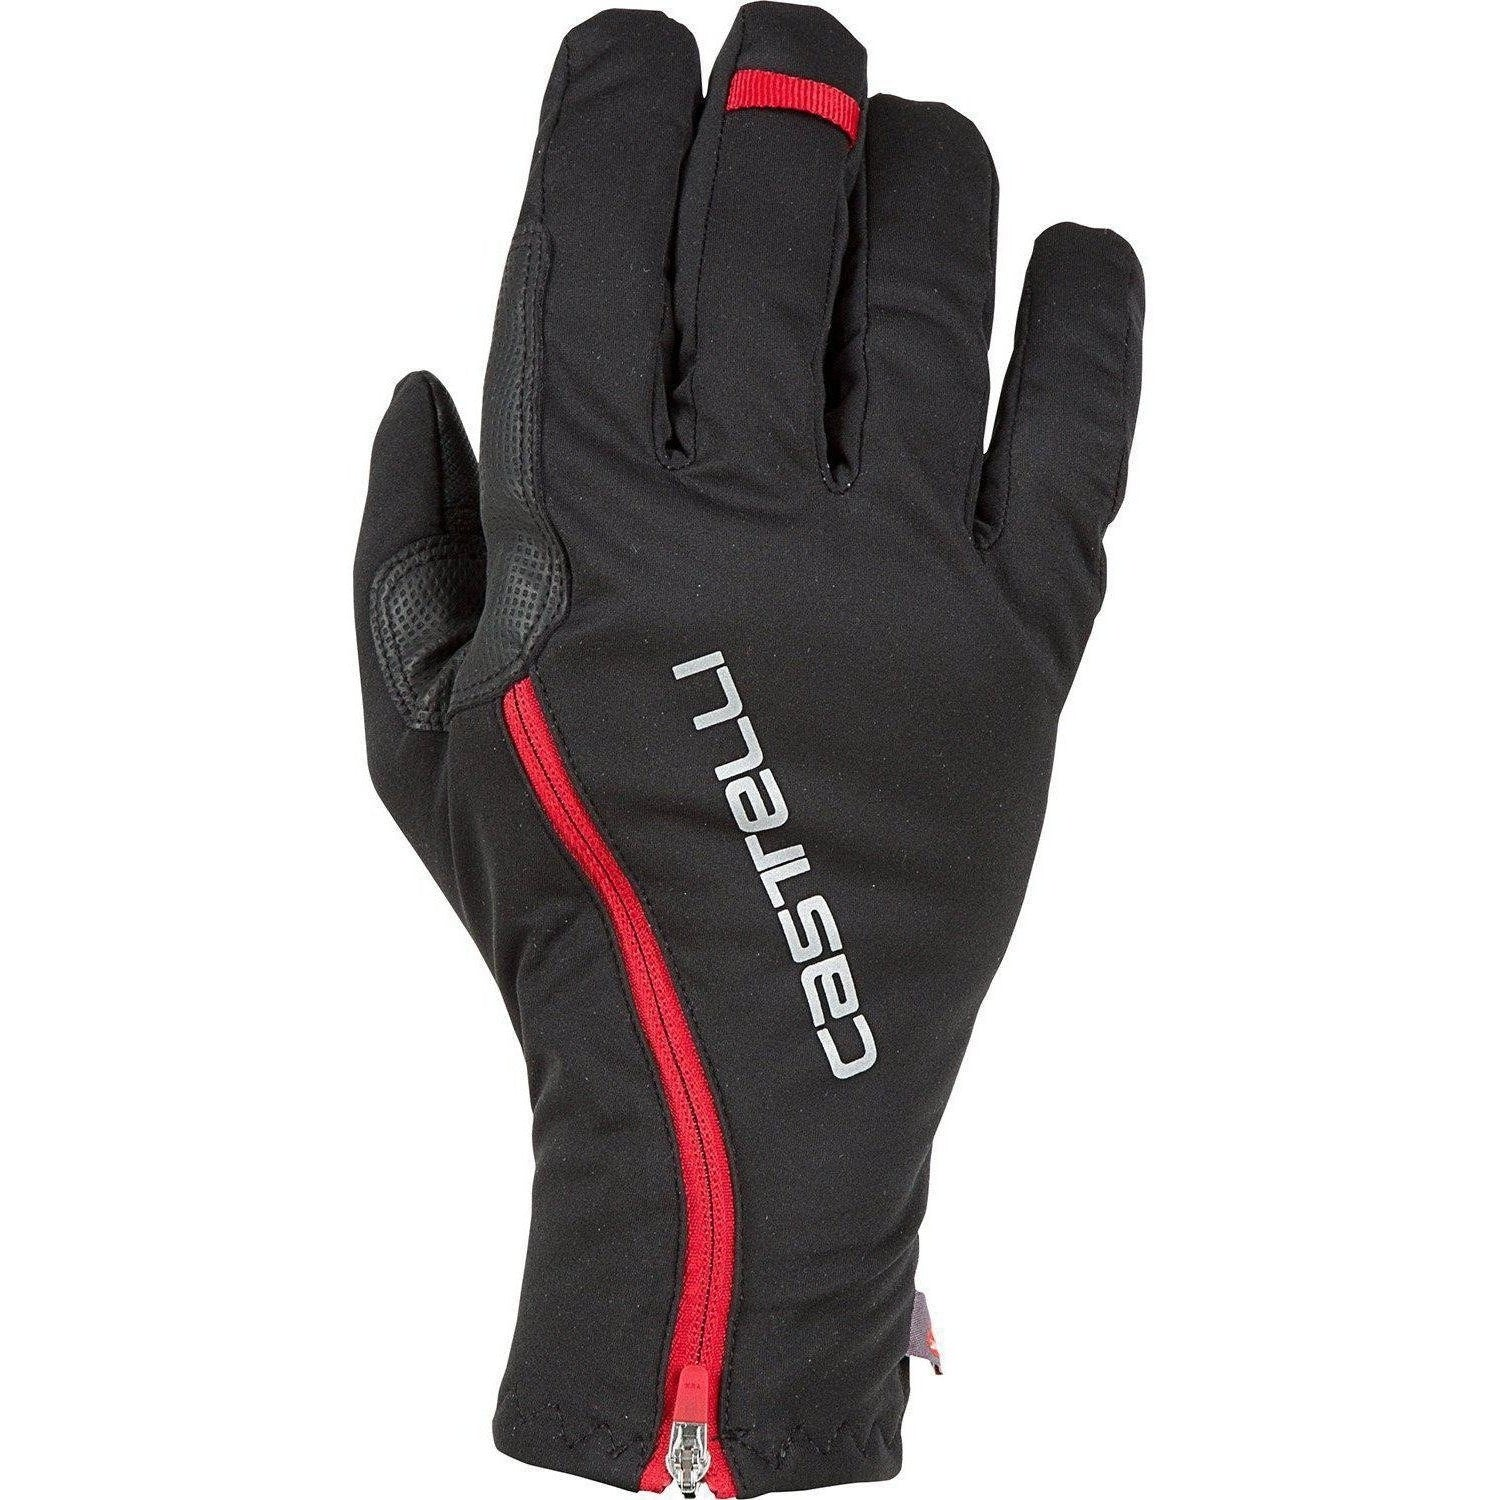 Castelli-Castelli Spettacolo RoS Gloves-Black/Red-XS-CS185260101-saddleback-elite-performance-cycling